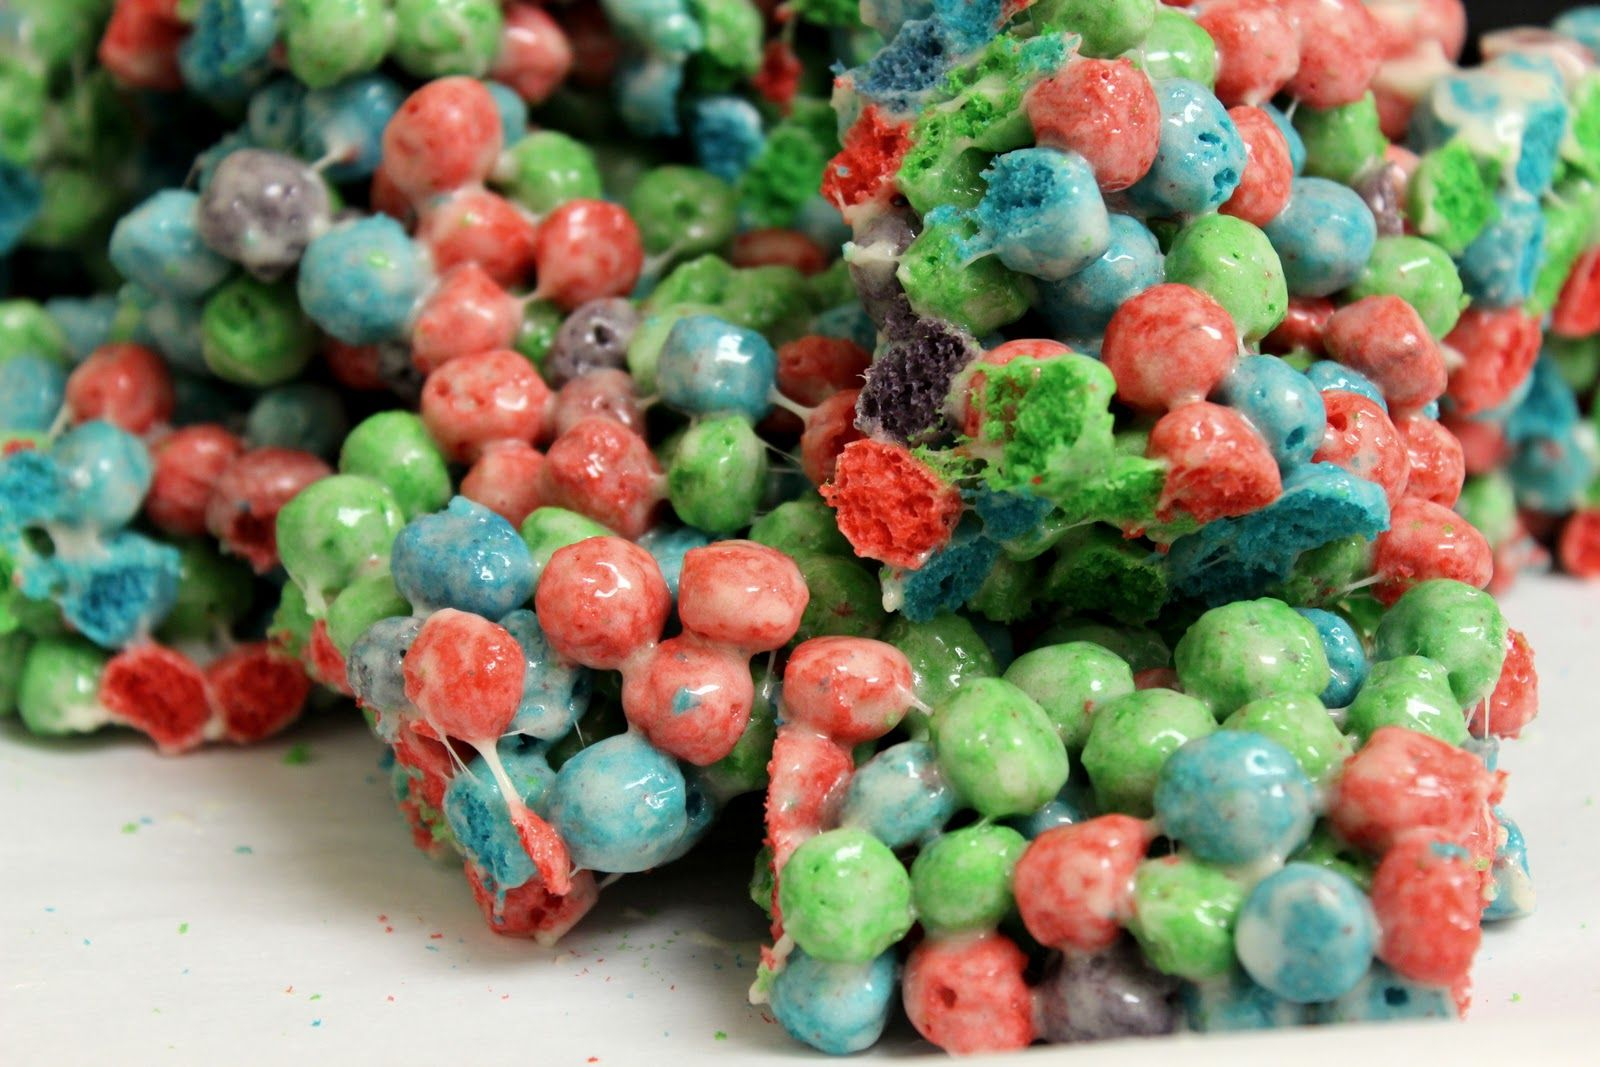 Oops All Berries Marshmallow Treats Heavily Edited All Berries Marshmallow Treats Berries Recipes Cap'n crunch oops is filled with delicious fruit flavored berry shapes your whole family will love. oops all berries marshmallow treats